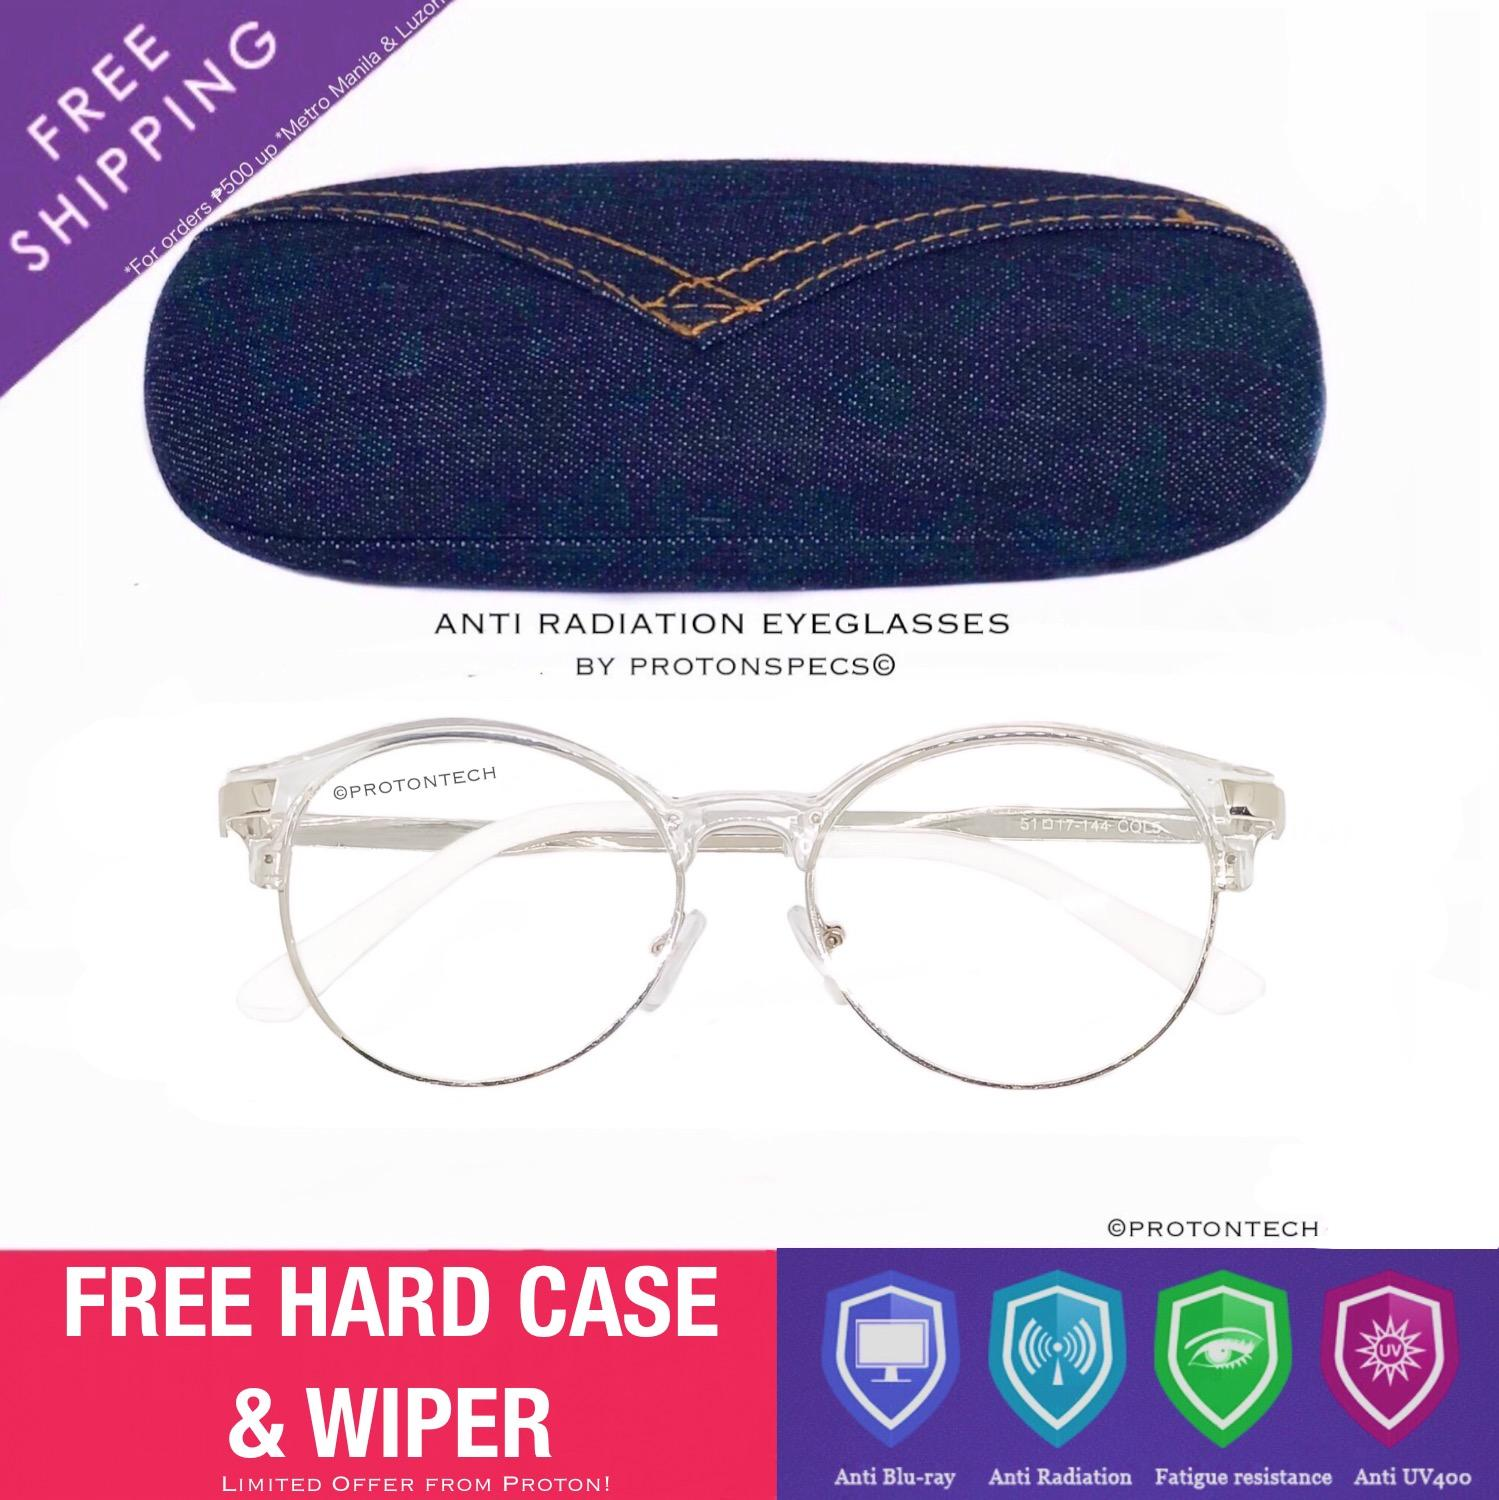 7fee43a7535 Neo 02 Anti Radiation Computer Eyeglasses by Proton - Replaceable Lens